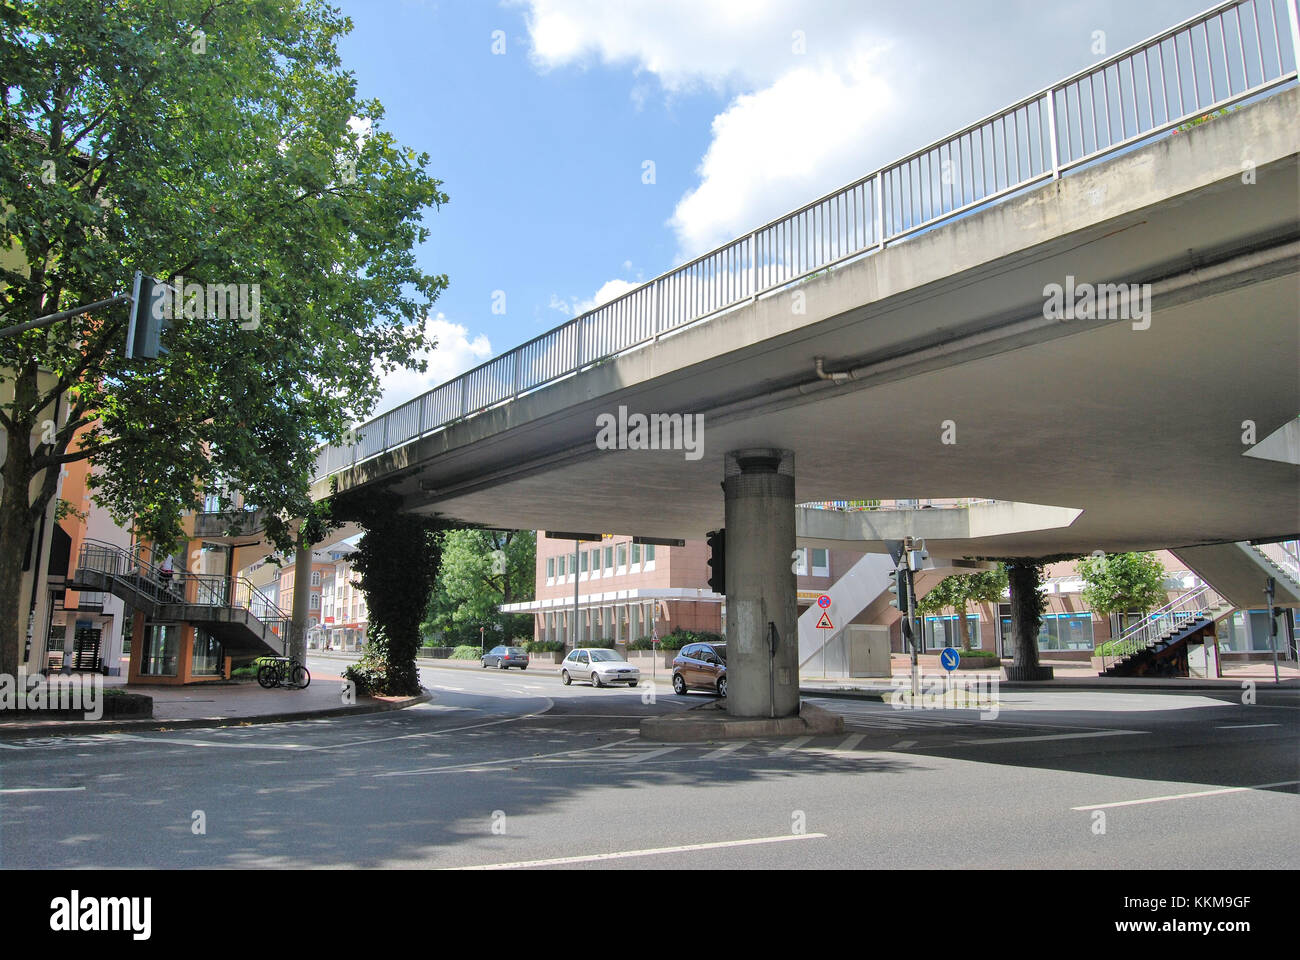 The so-called 'elephant's loo' is a pedestrian's overpass at the Selterstor in university town Giessen - Stock Image